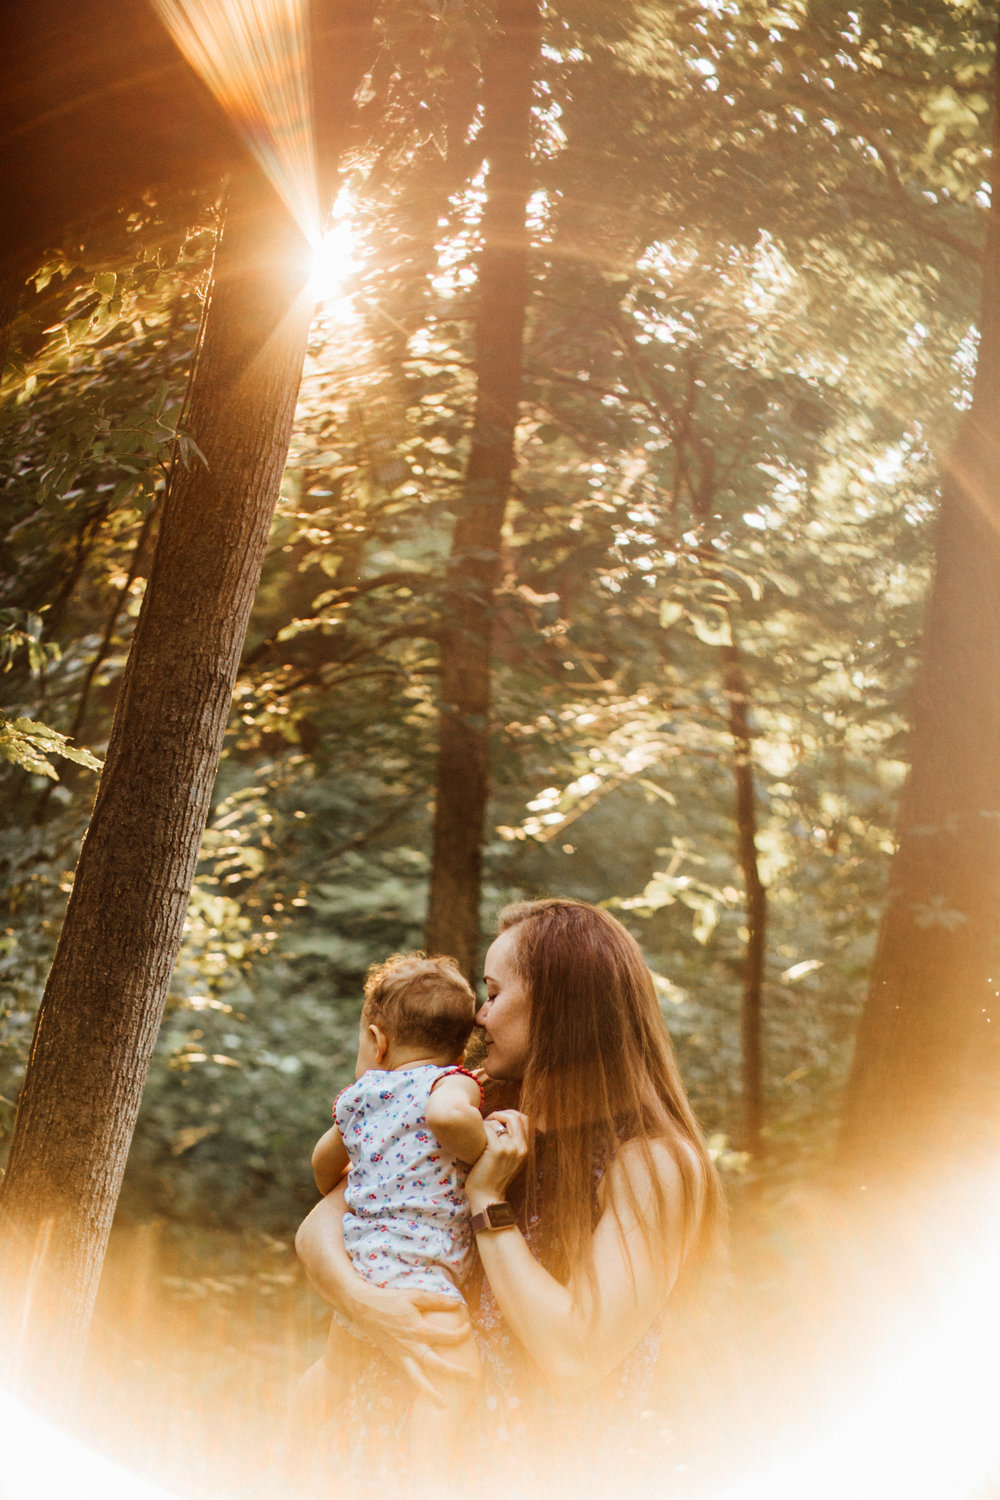 Mom kisses toddler in wooden sunlit photo from Madison and Huntsville Alabama family photo session.